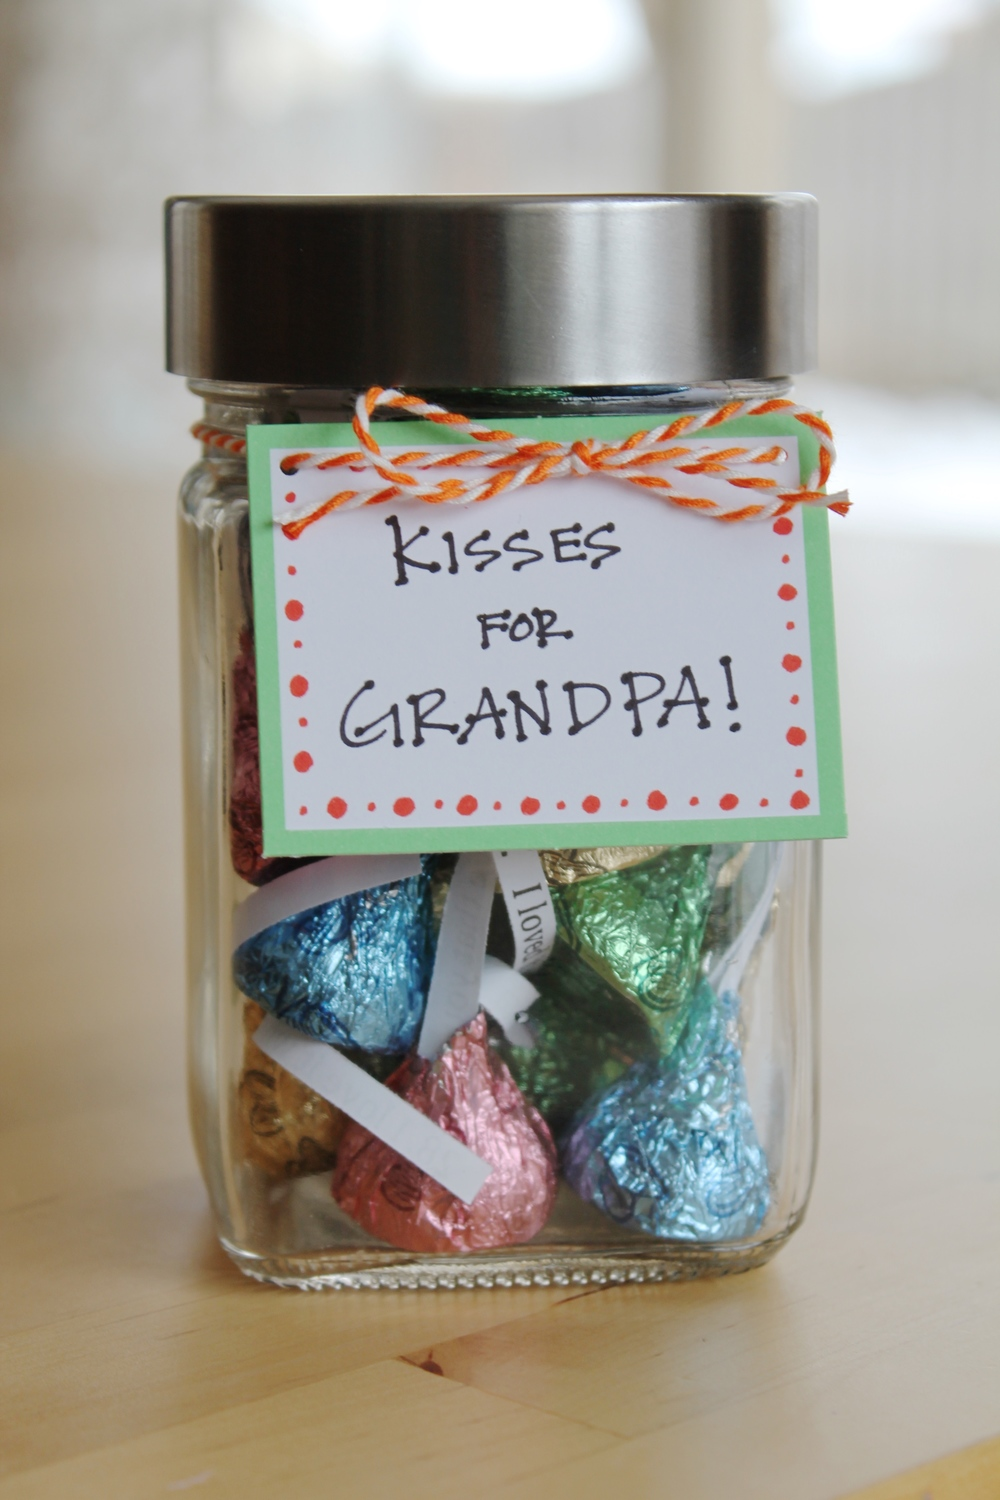 How do I love thee? Let me count the ways! Unwrap Hershey Kisses and replace the paper with a personalized little note. Fill an entire jar with all the reasons you love them. It is the perfect gift for Valentine's Day, Mother's Day or Father's Day.